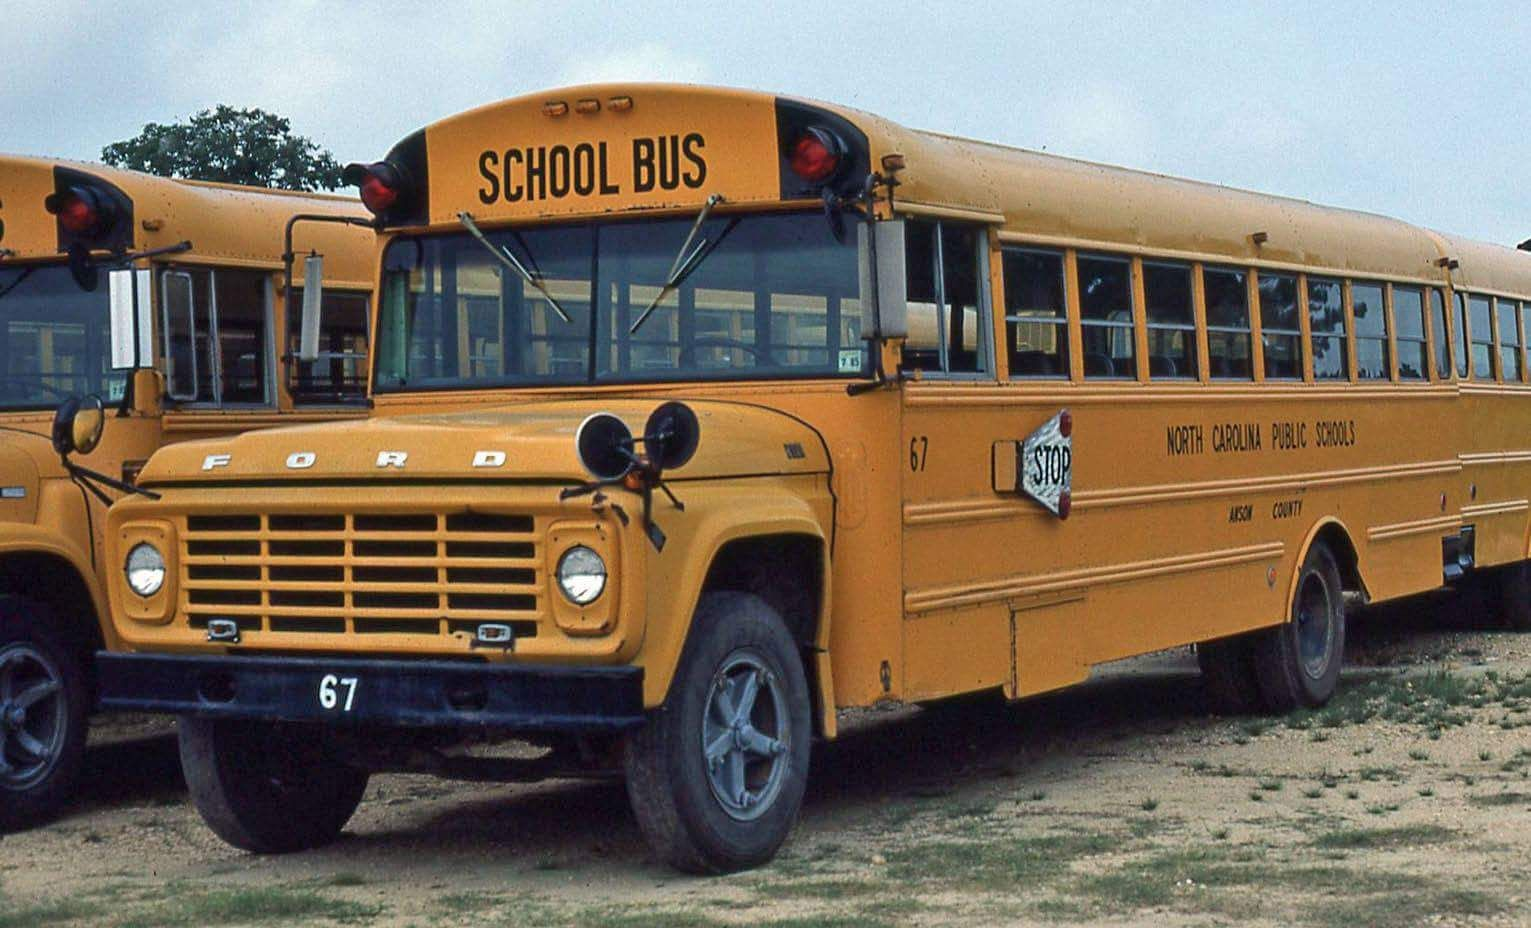 Anson County Schools North Carolina Public Schools 67 1973